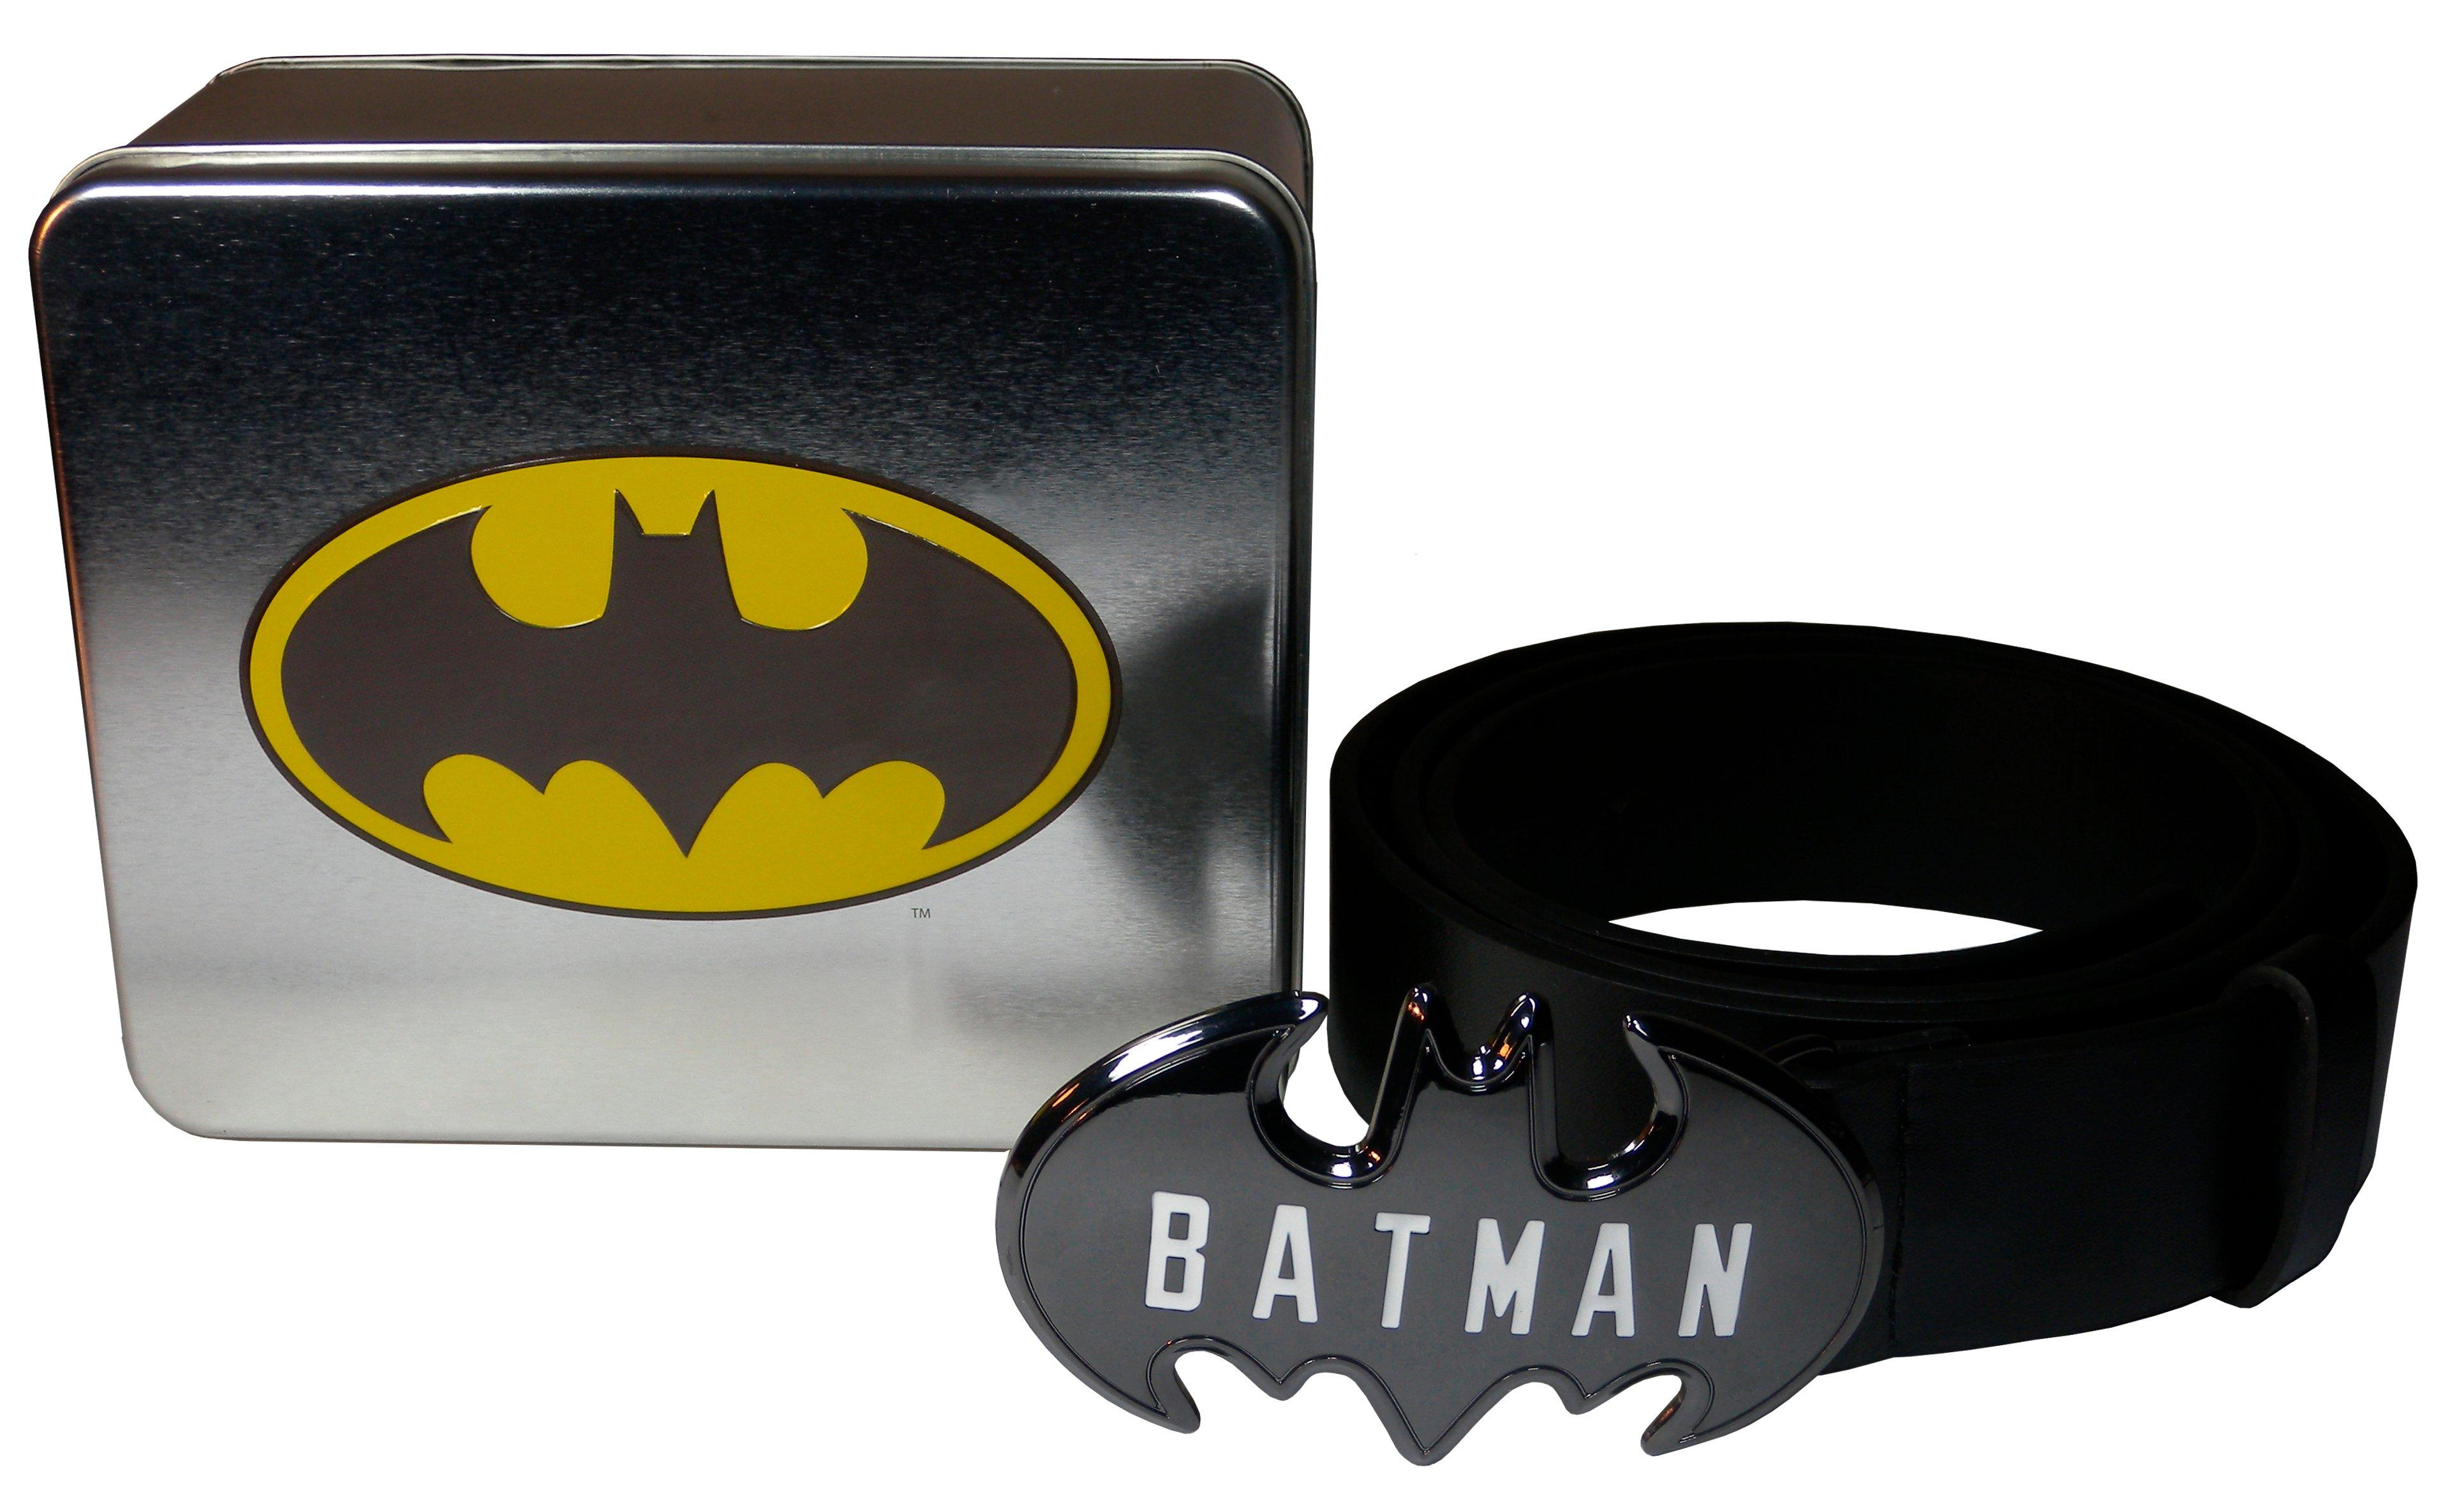 Batman Logo Buckle Belt in a Tin